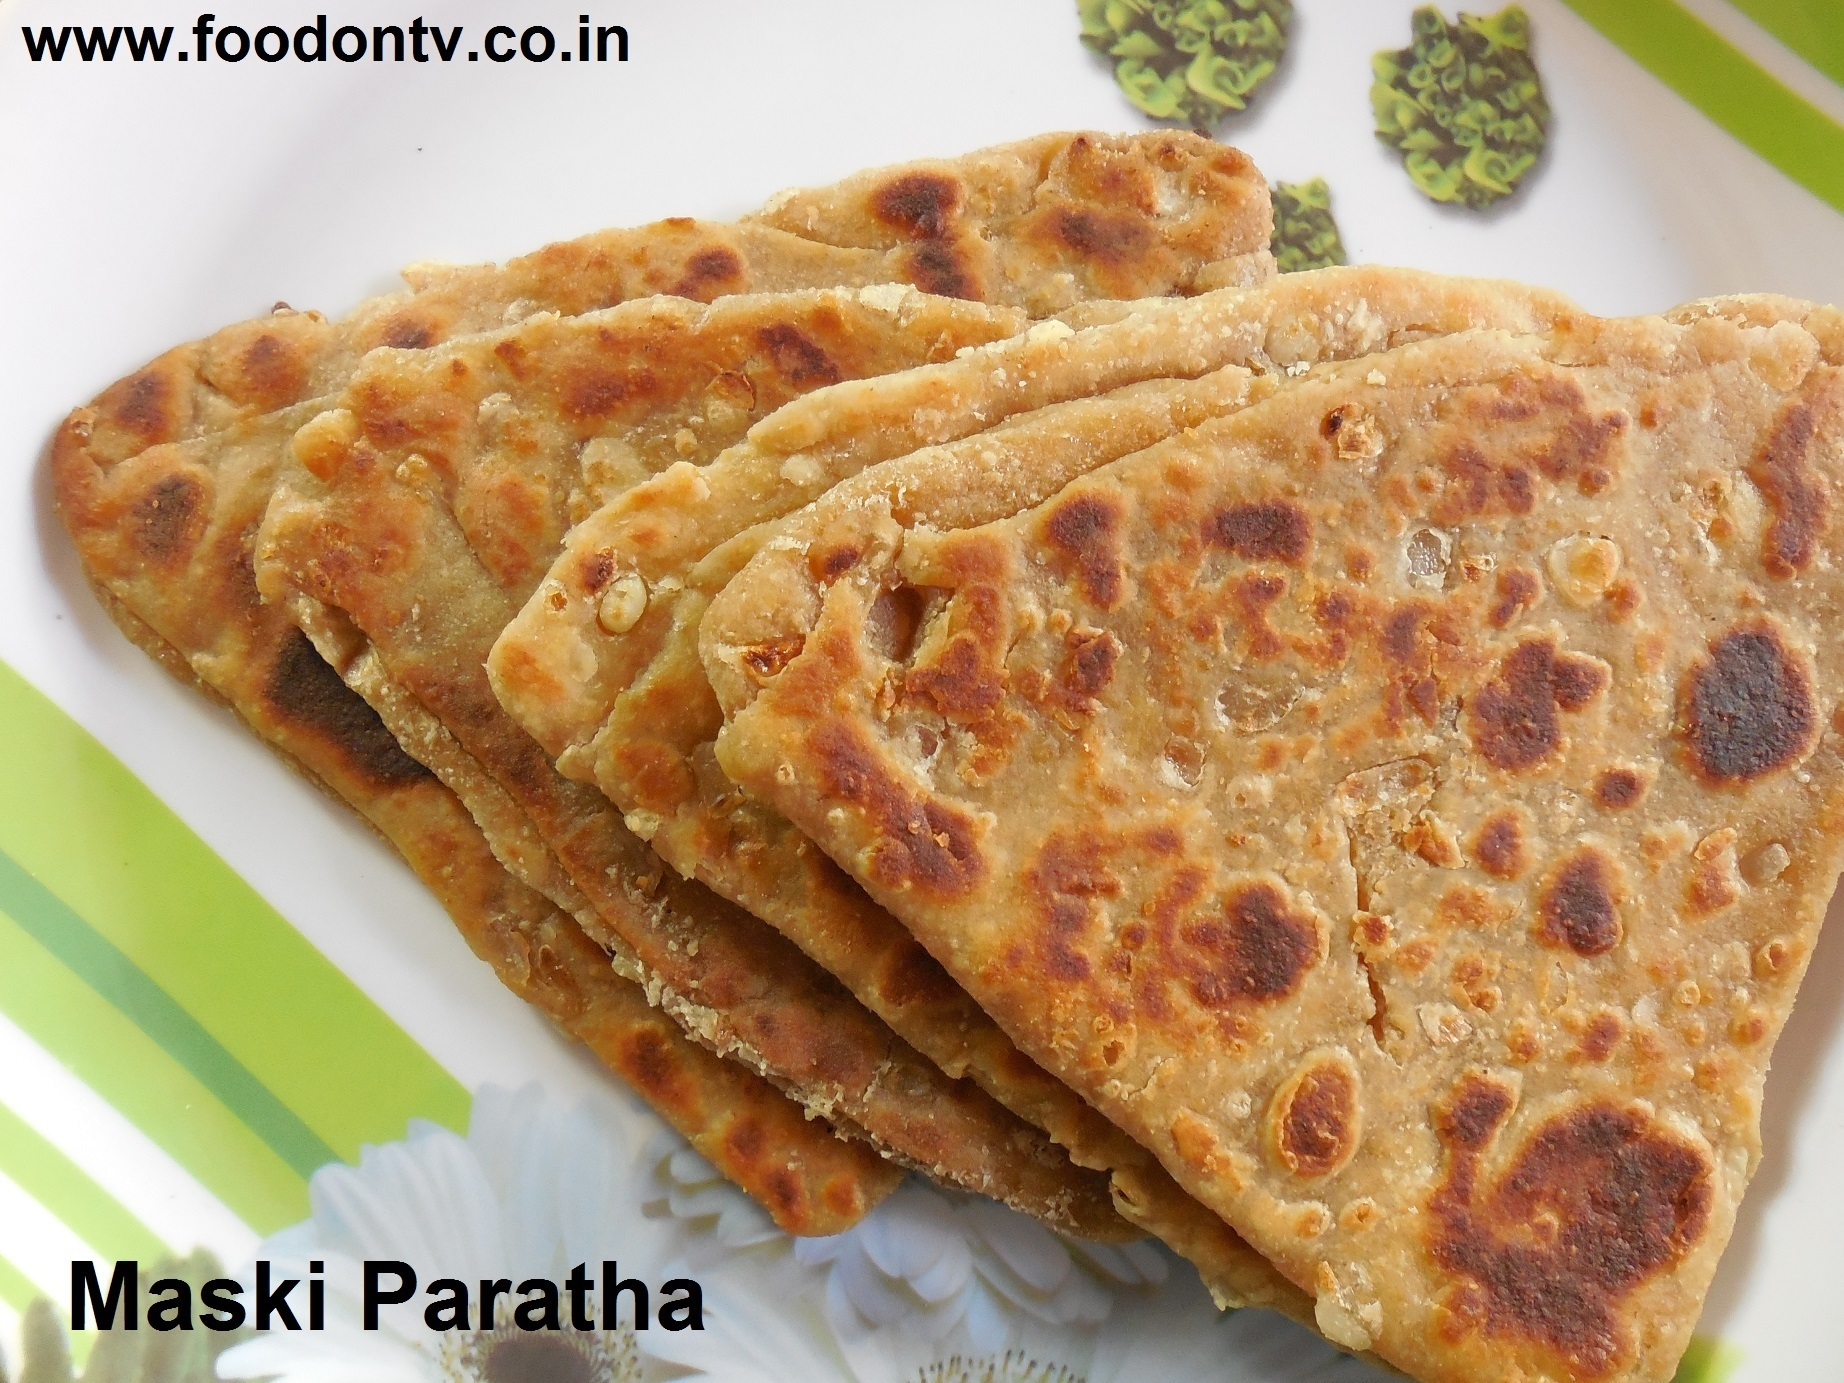 Maski Paratha Recipe- A New Indian Vegetarian Flat Bread Recipe